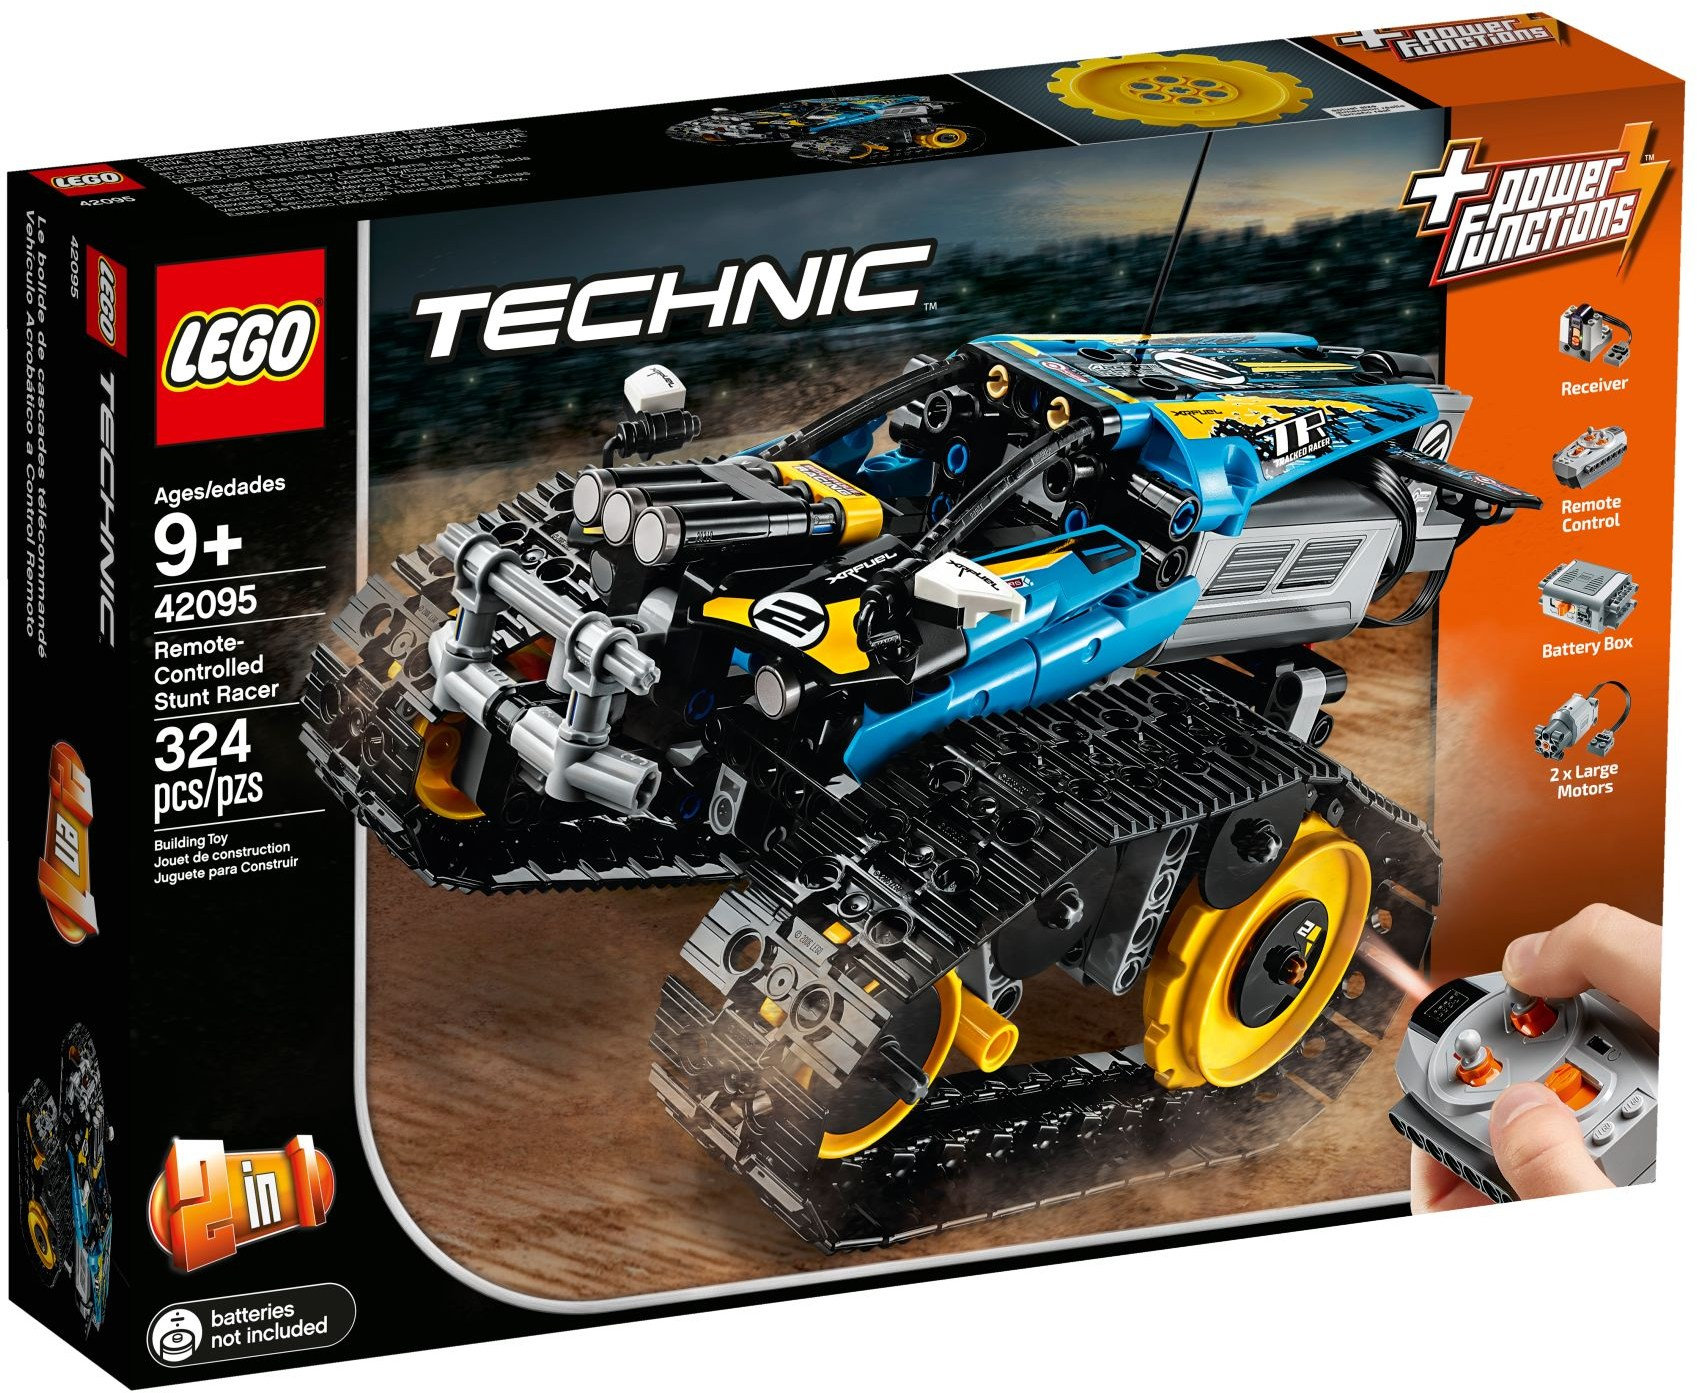 LEGO REMOTE CONTROLLED STUNT RACER - 42095